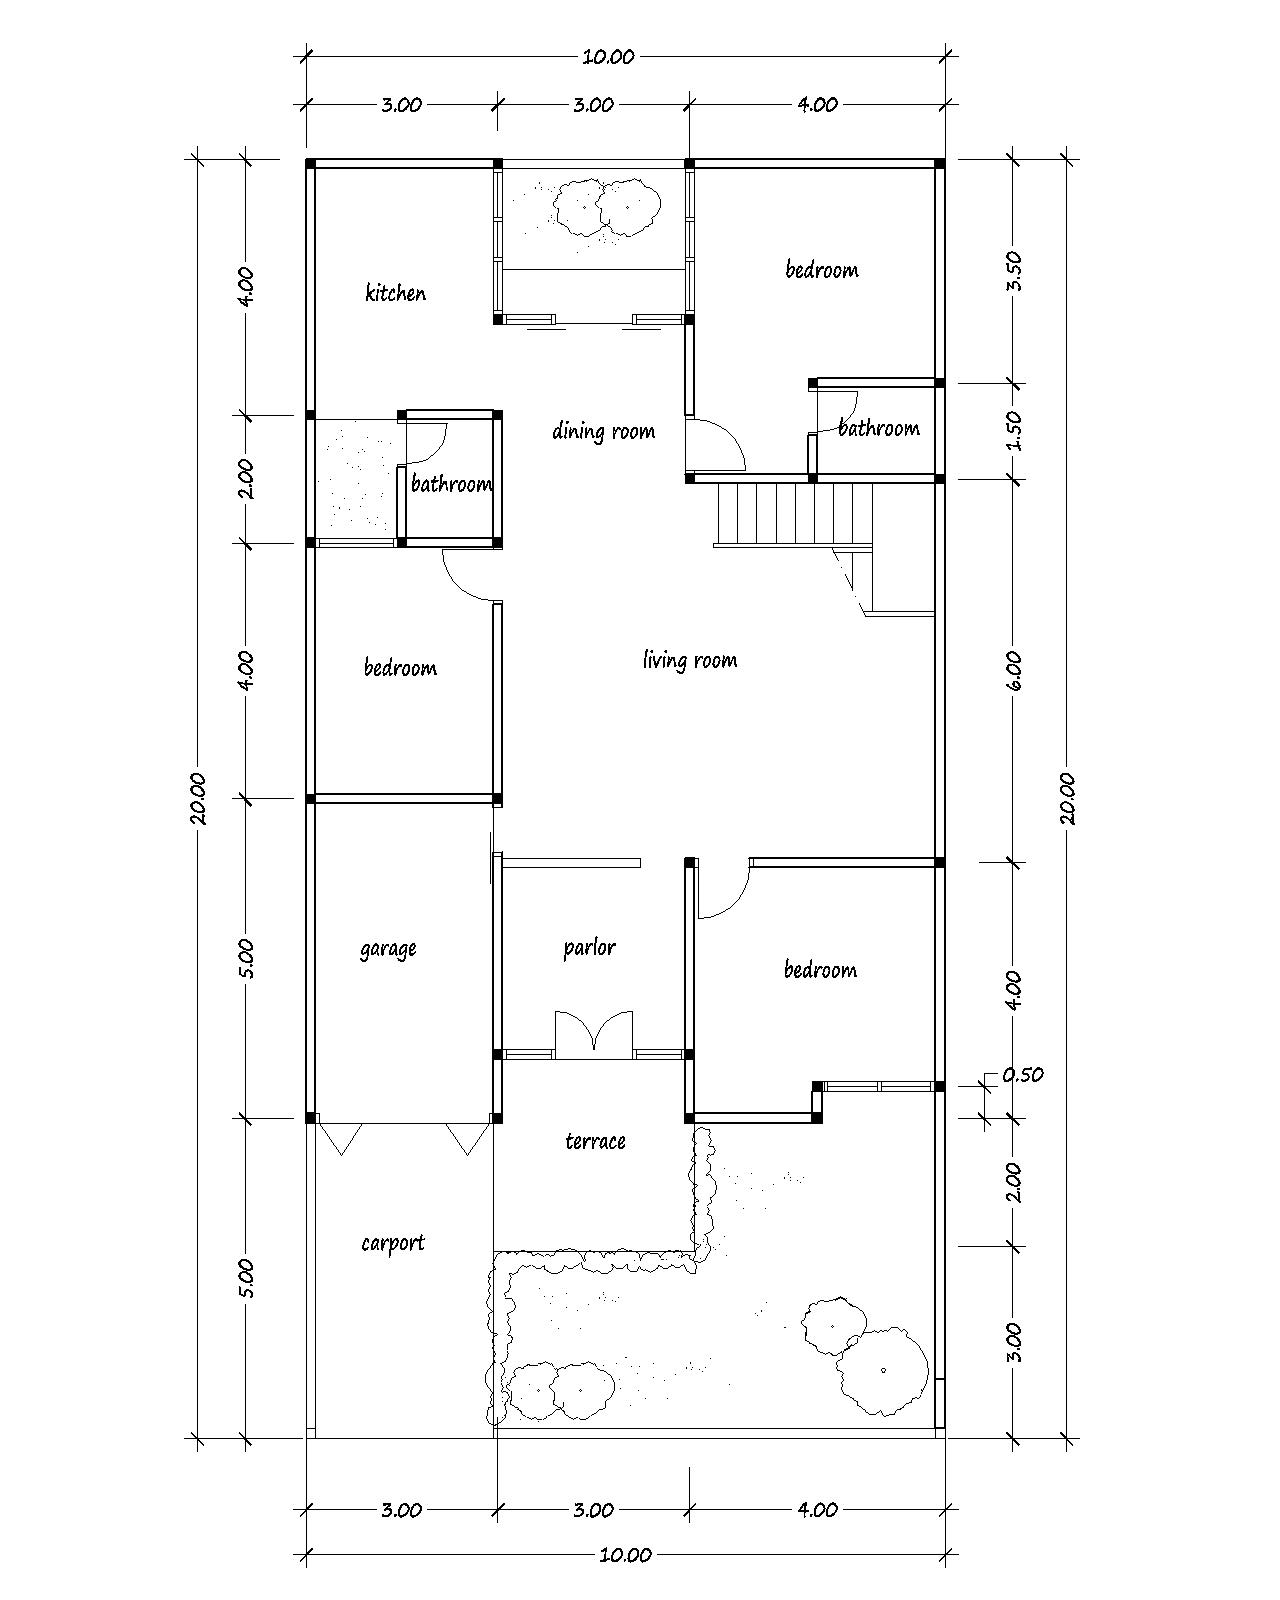 House Designs And Floor Plans House Plans For You Plans Image Design And About House